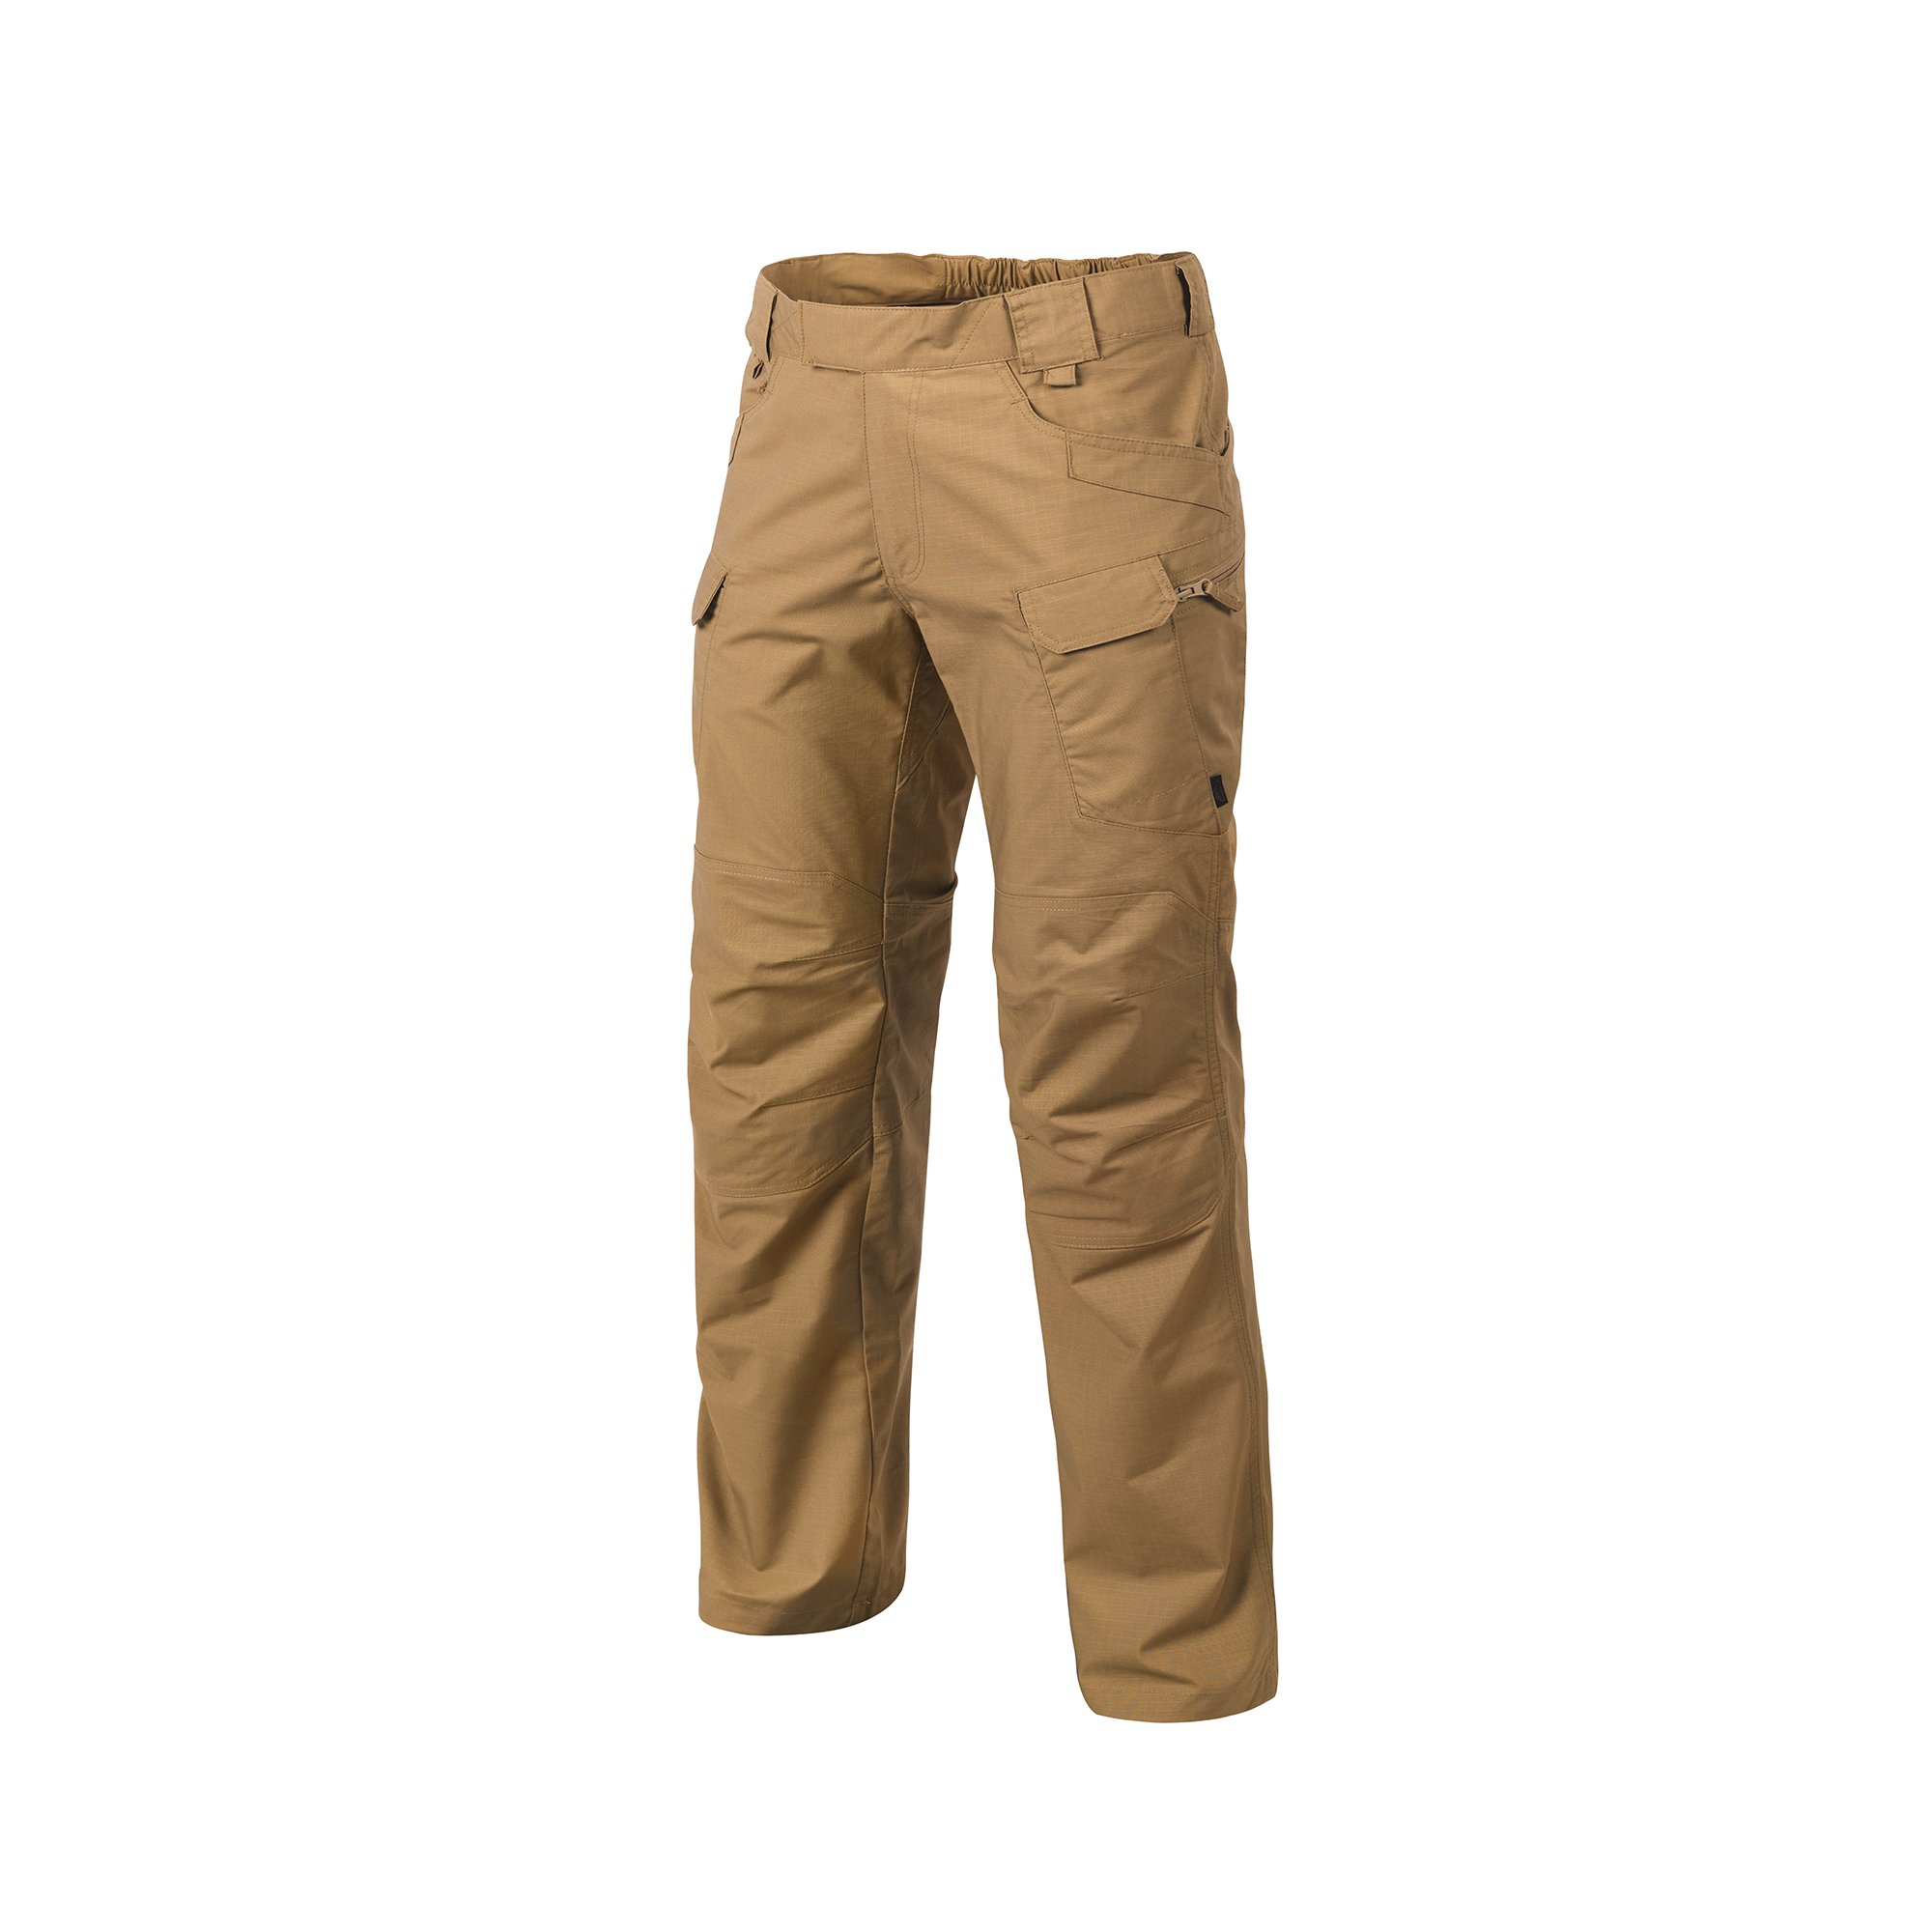 HELIKON-TEX Urban Line, UTP Urban Tactical Pants Ripstop Coyote Brown, Military Ripstop Cargo Style, Men's Waist 32 Length 32